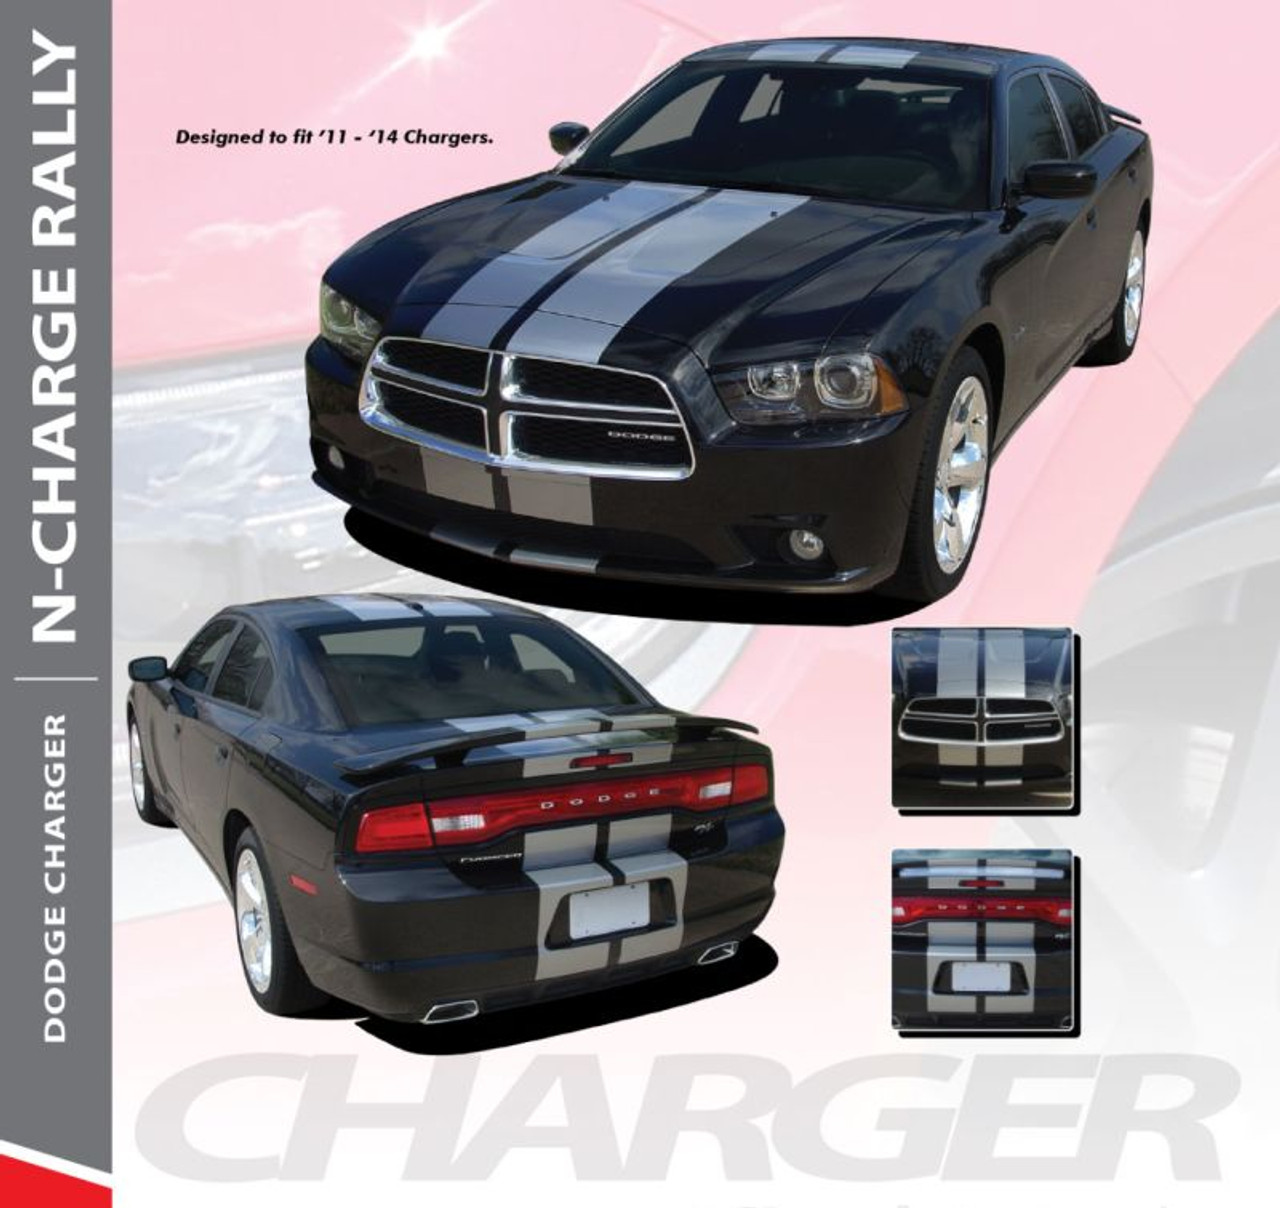 N Charge Rally Dodge Charger Racing Stripes Charger Decals Vinyl Graphics